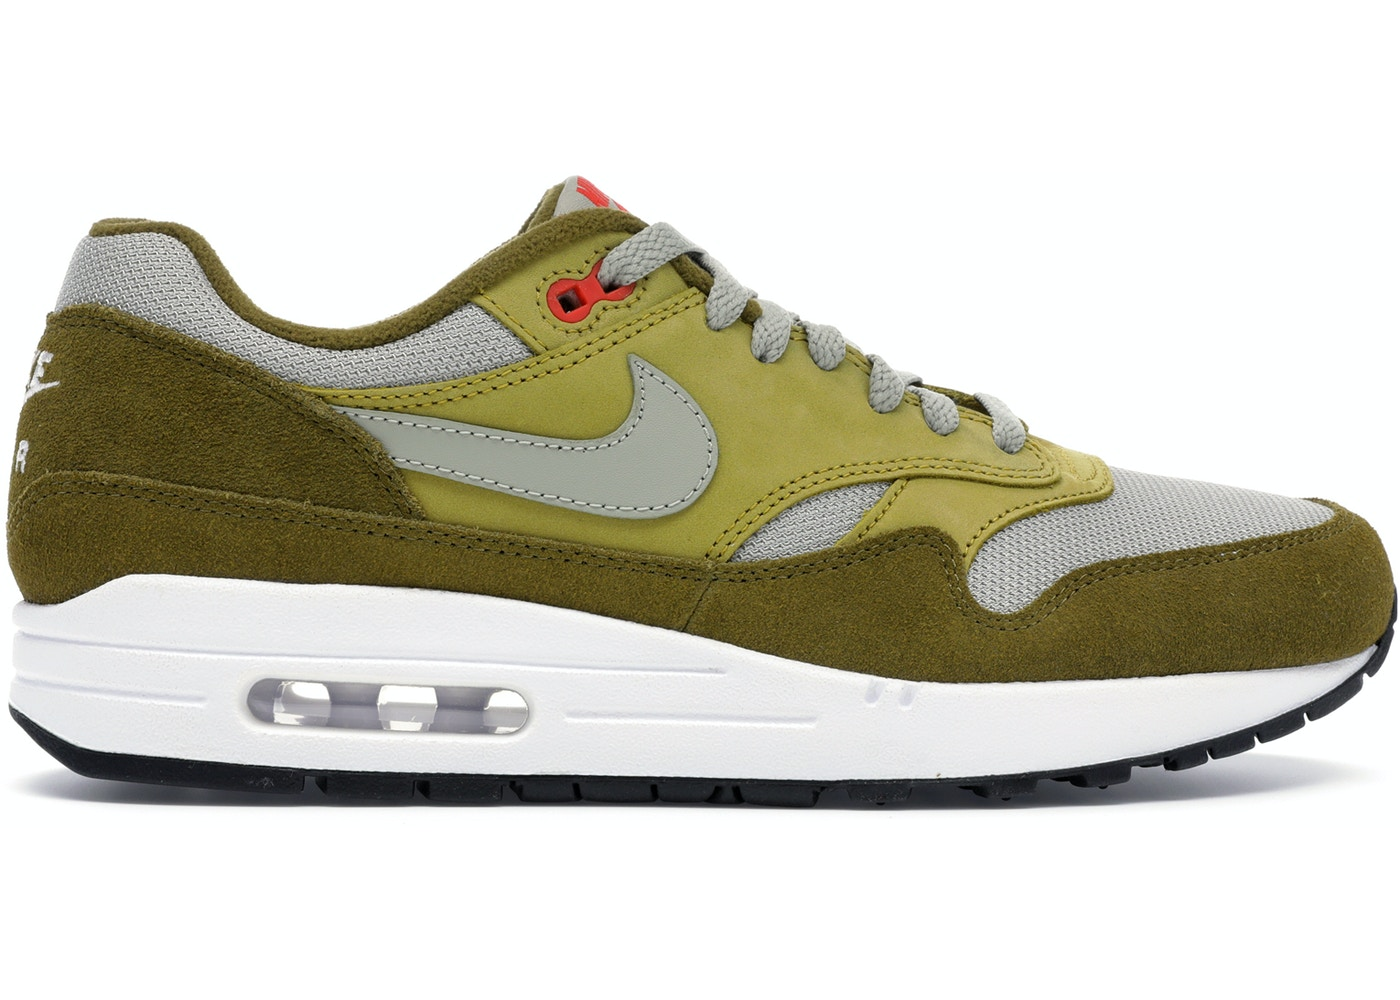 buy online e2c34 7da90 Air Max 1 Curry Pack (Olive) - 908366-300